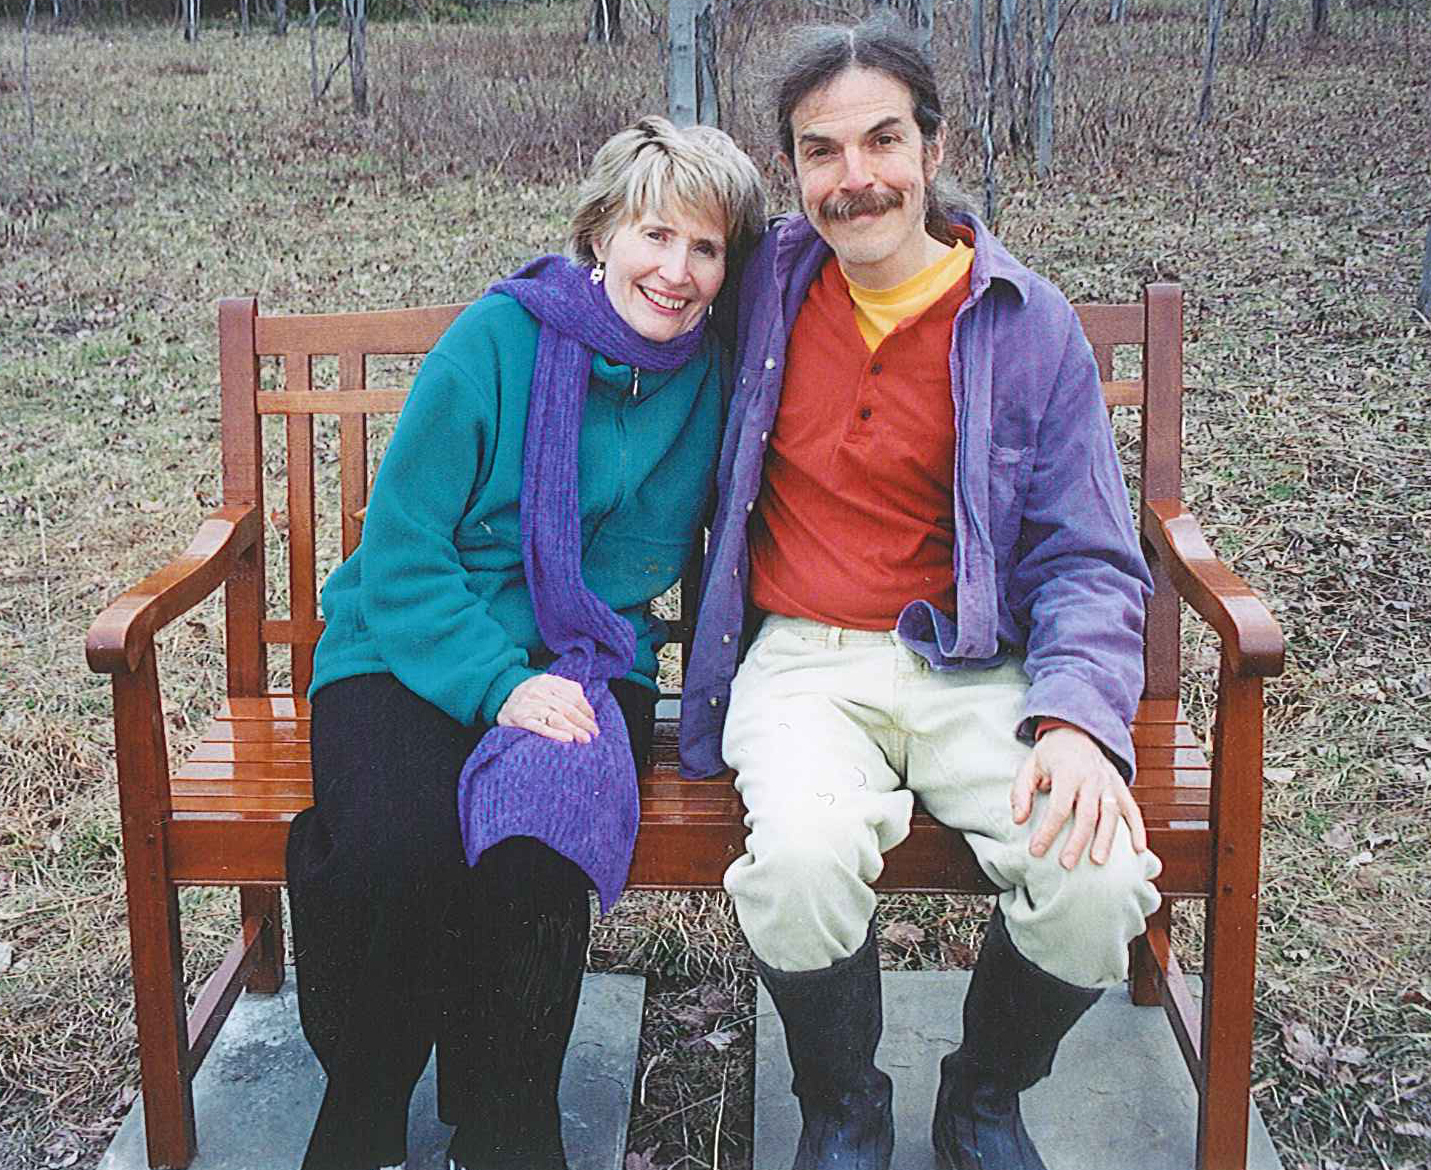 alice and larry mcdowell on bench